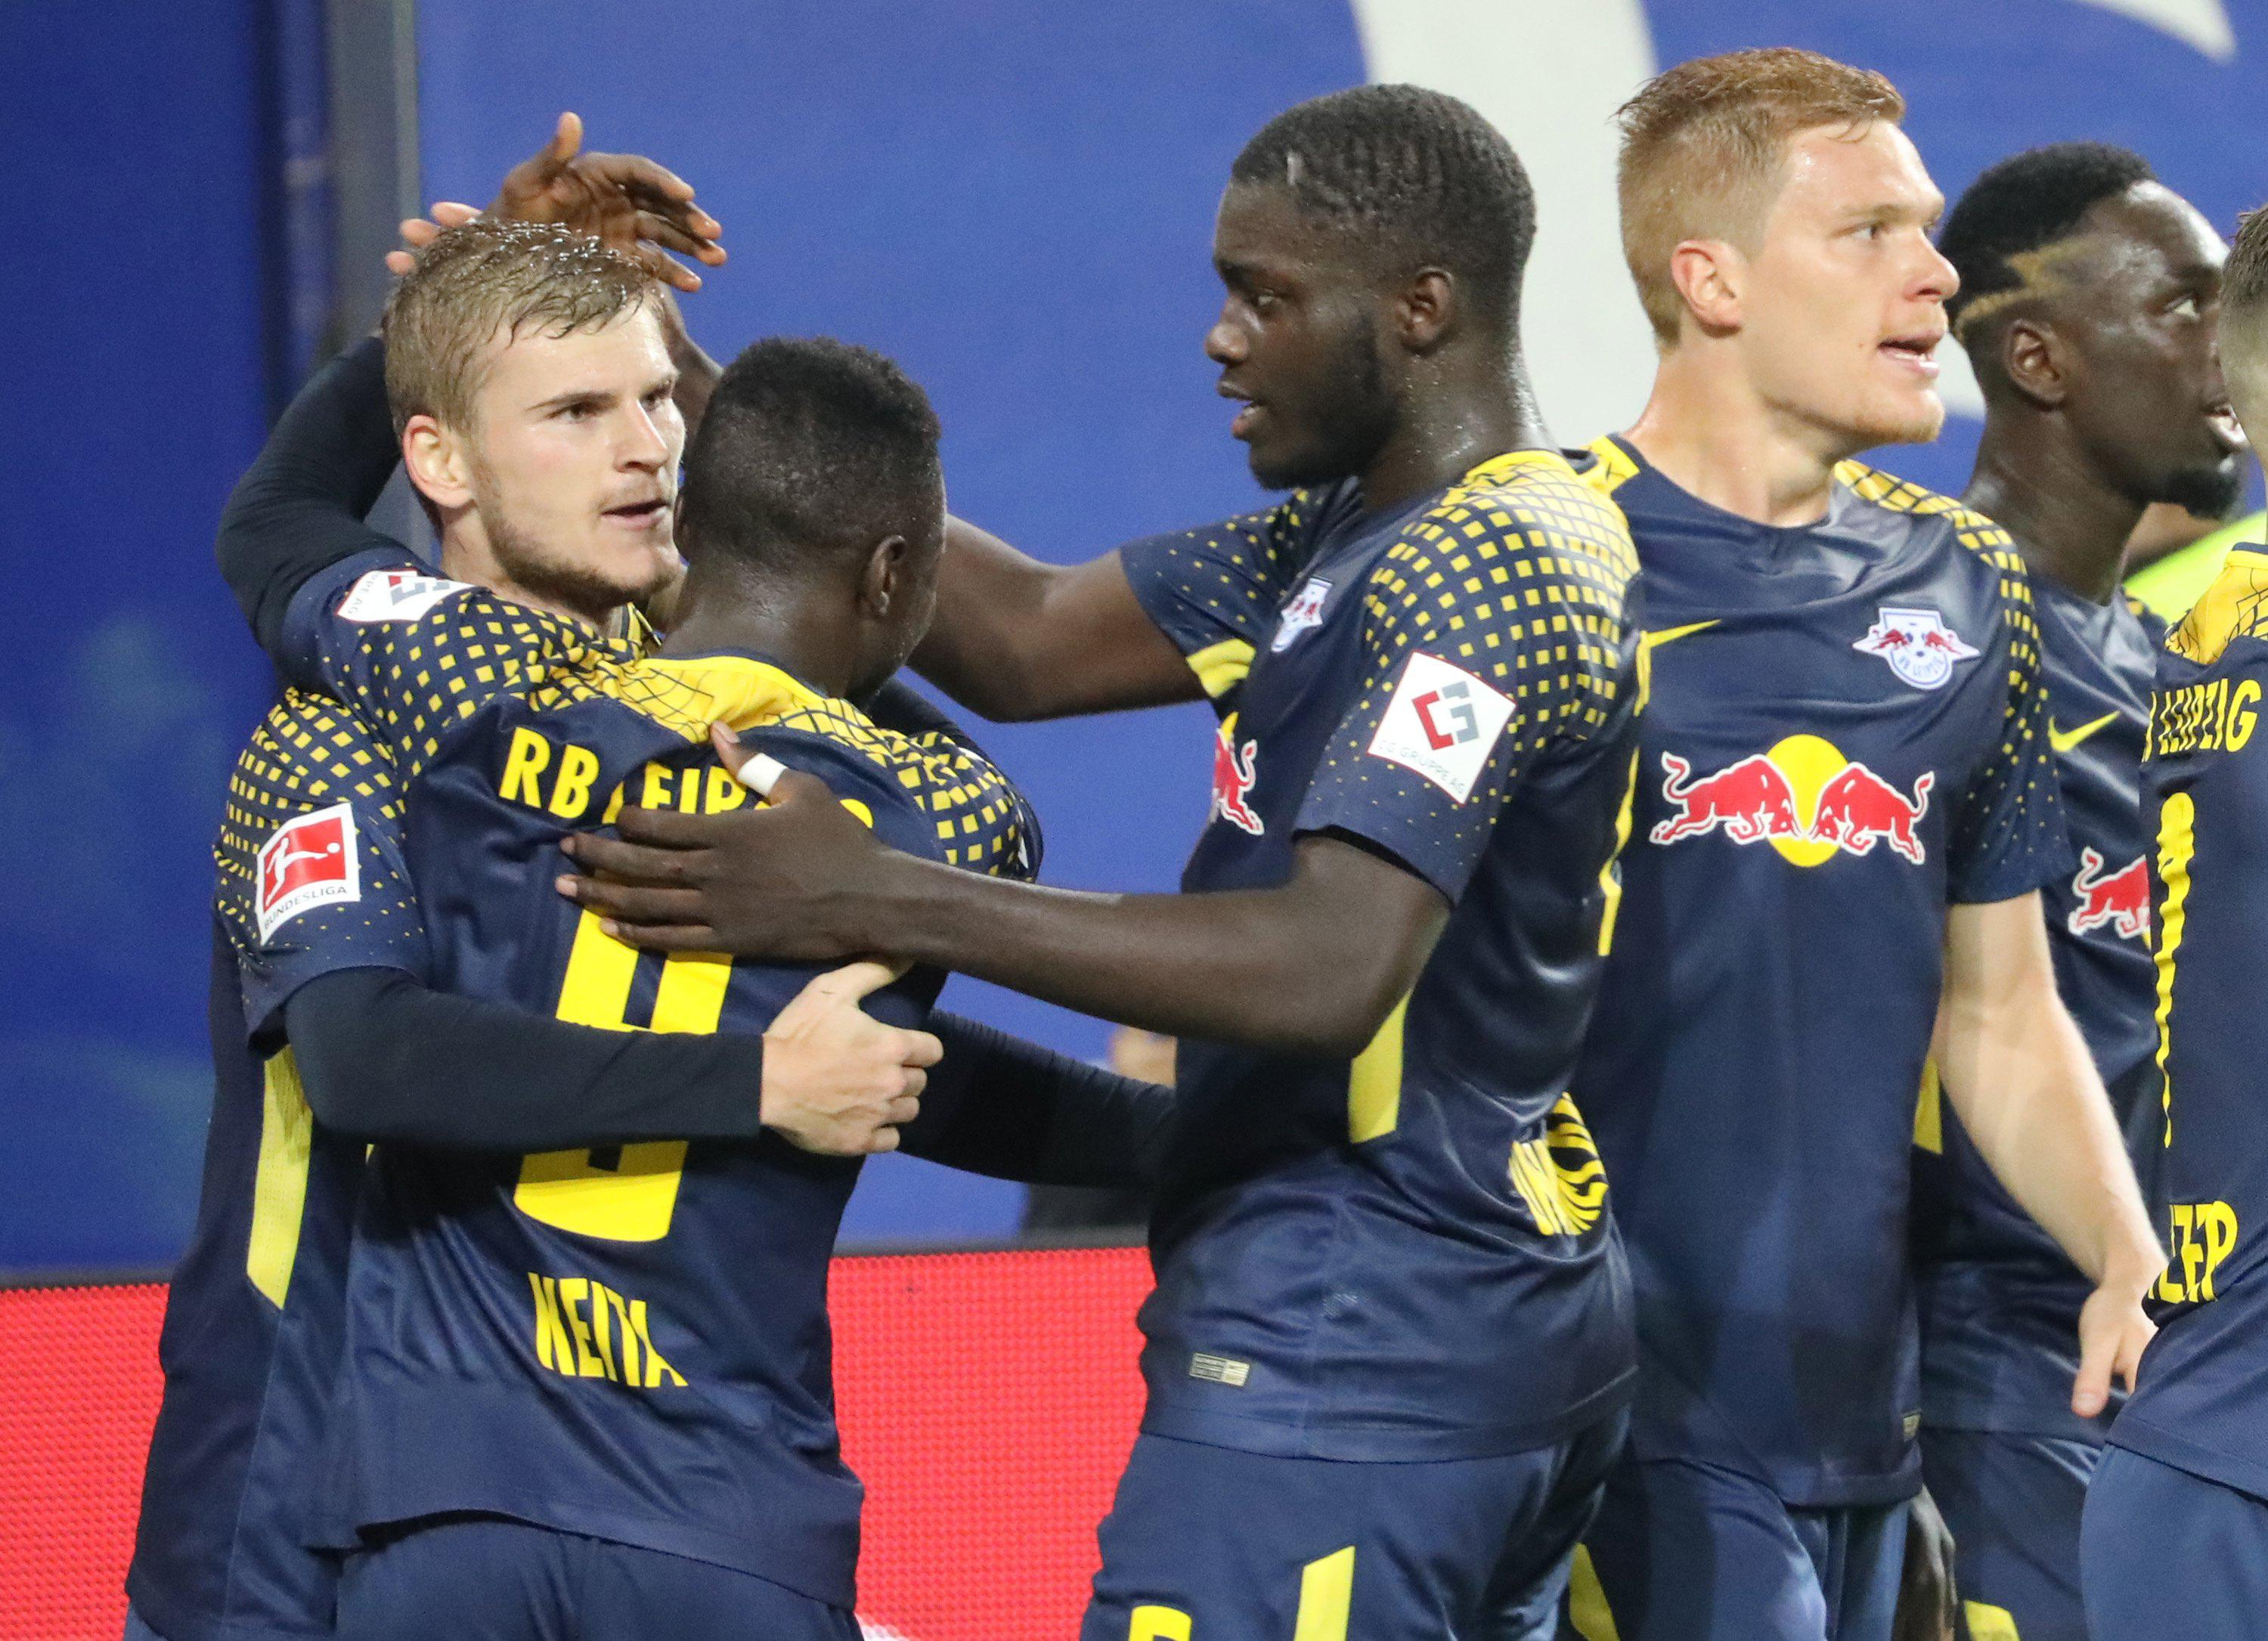 Leipzig's rise in the last 12 months has been phenomenal